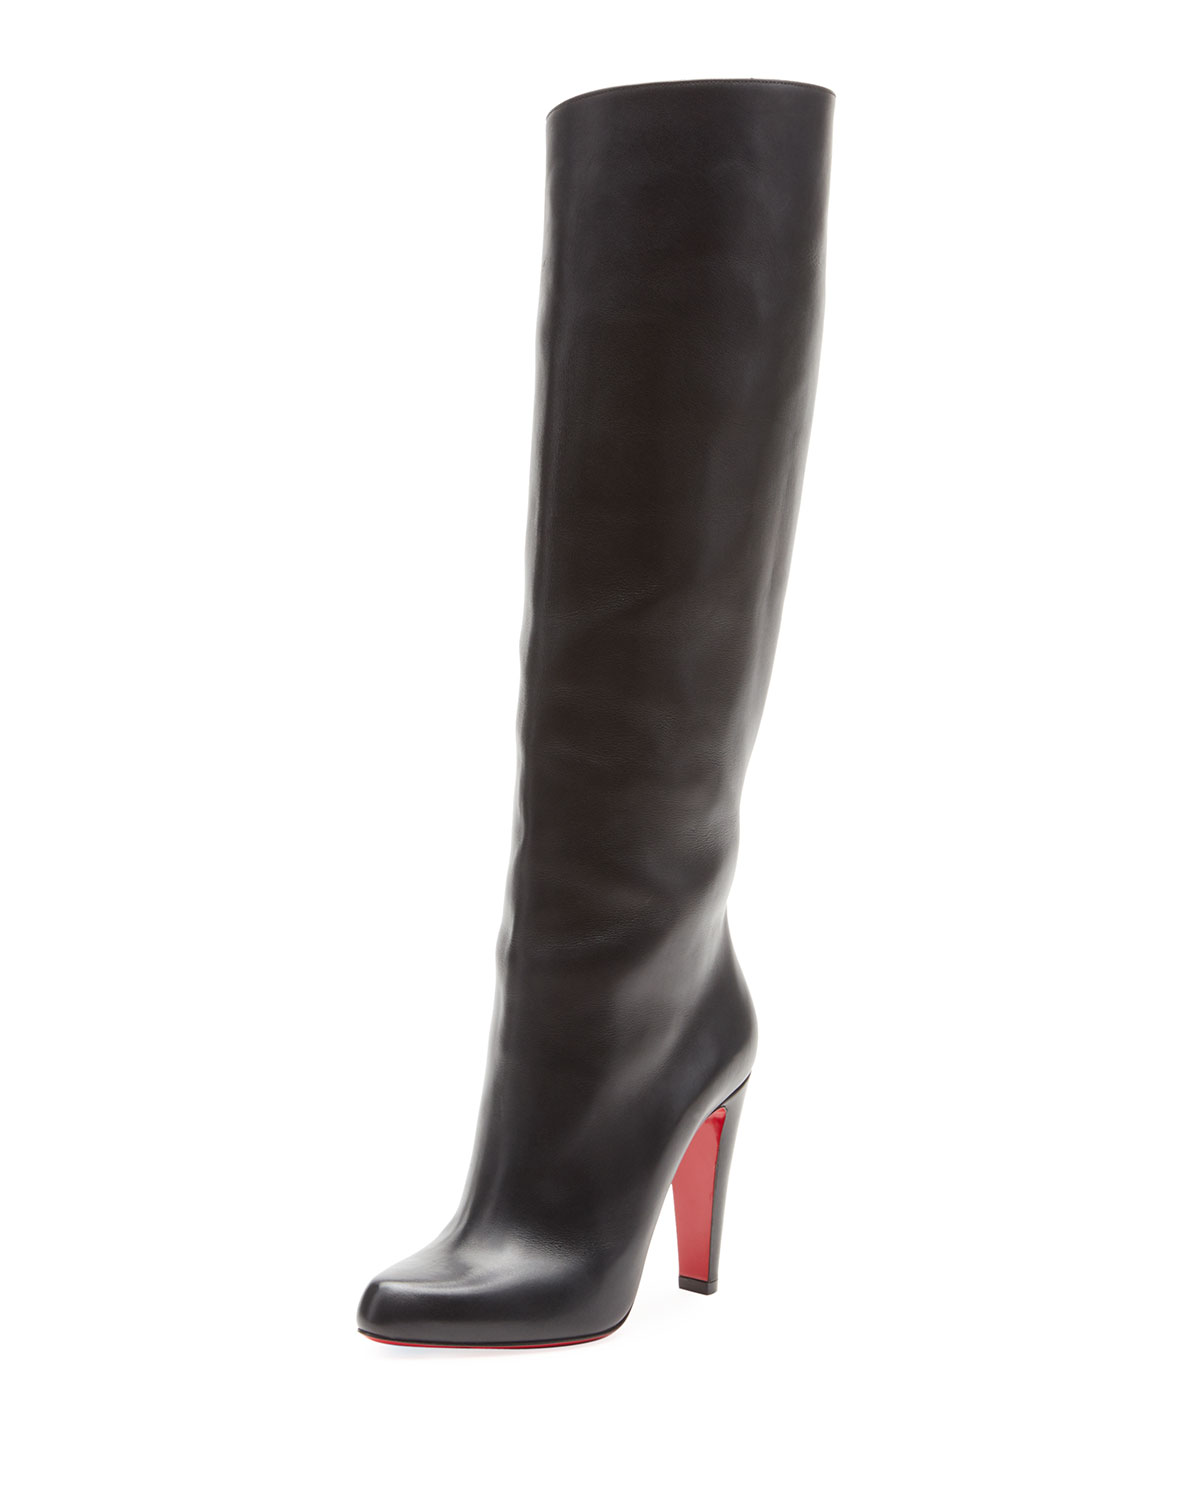 brand new 22a1d bfd68 Marmara Botta Red Sole Knee Boot